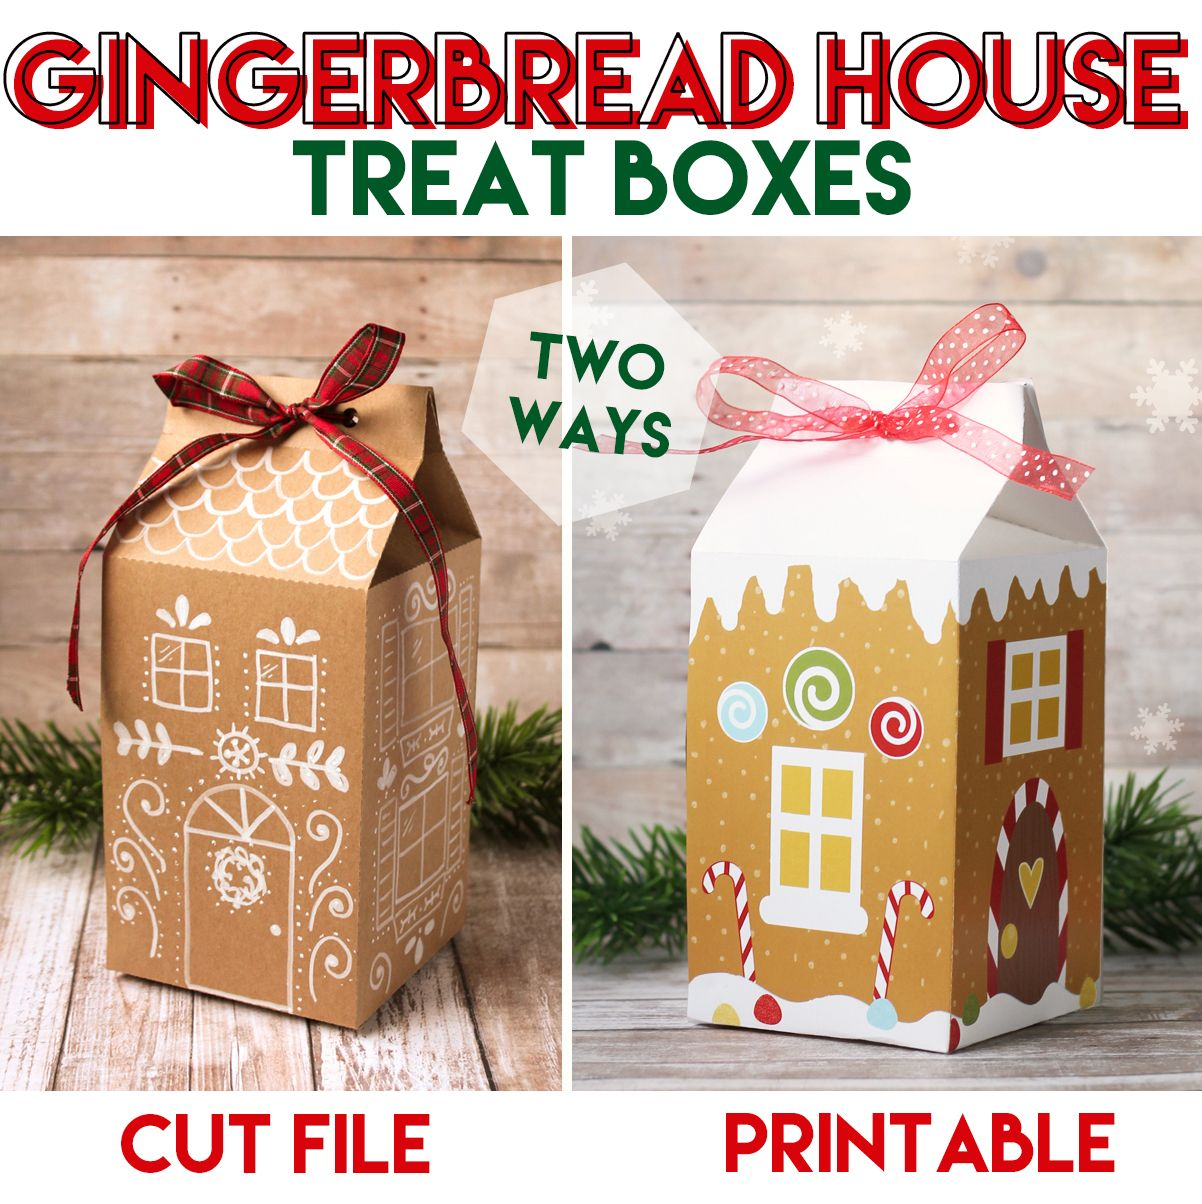 Pin on Blogger Holiday Crafts we Love